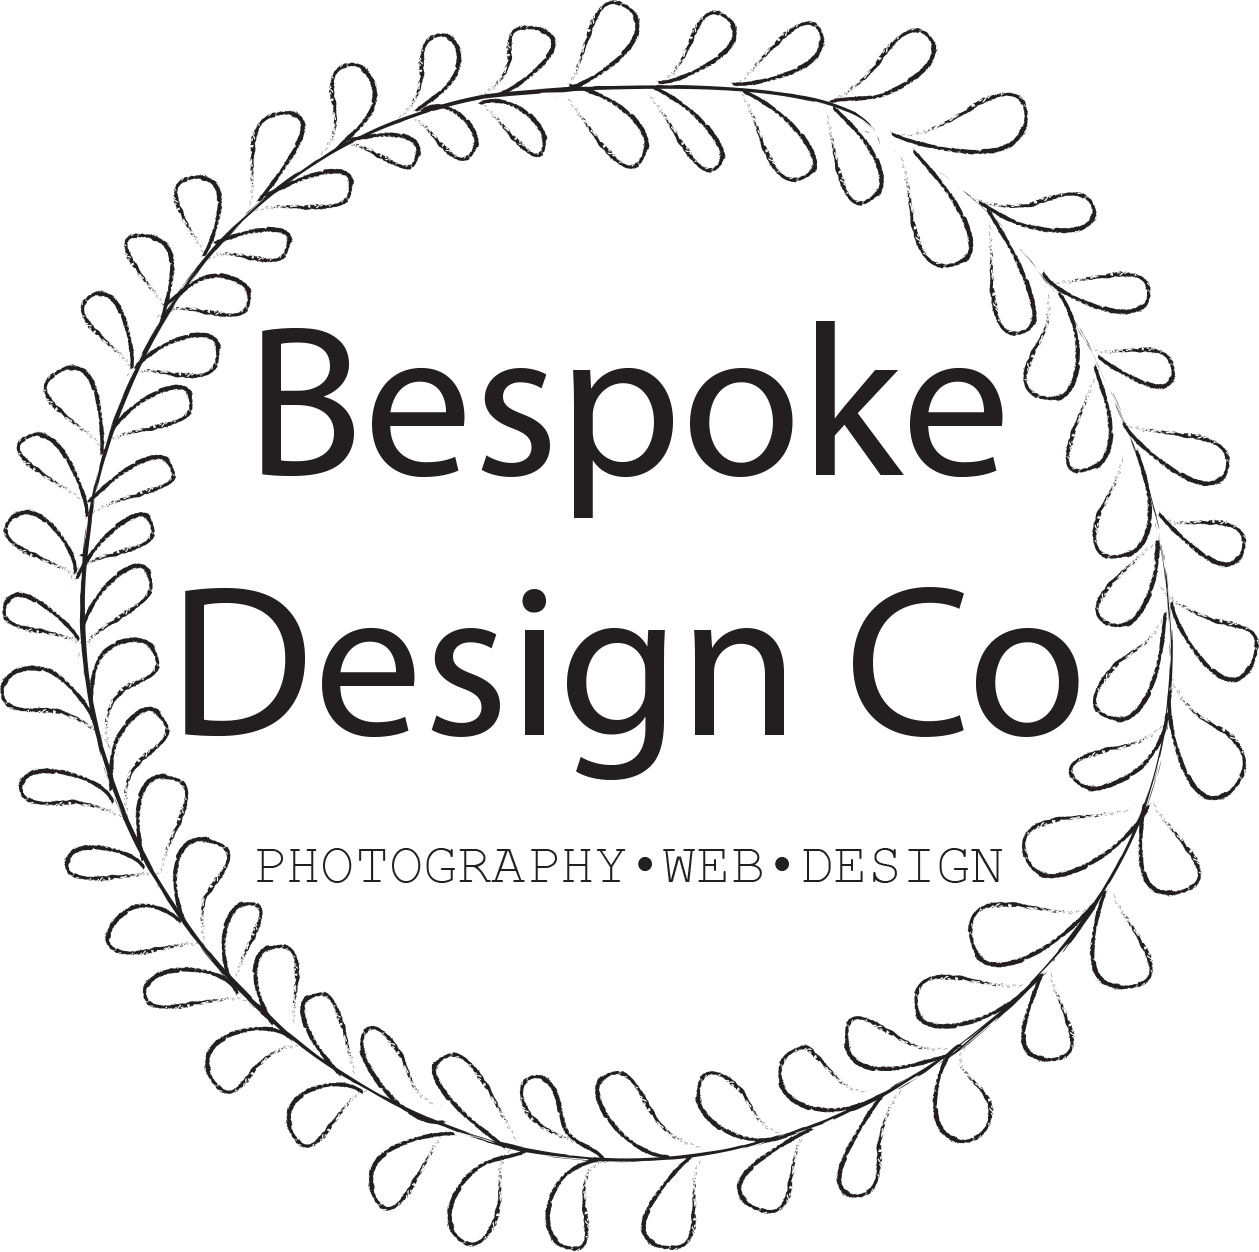 Bespoke Design Co